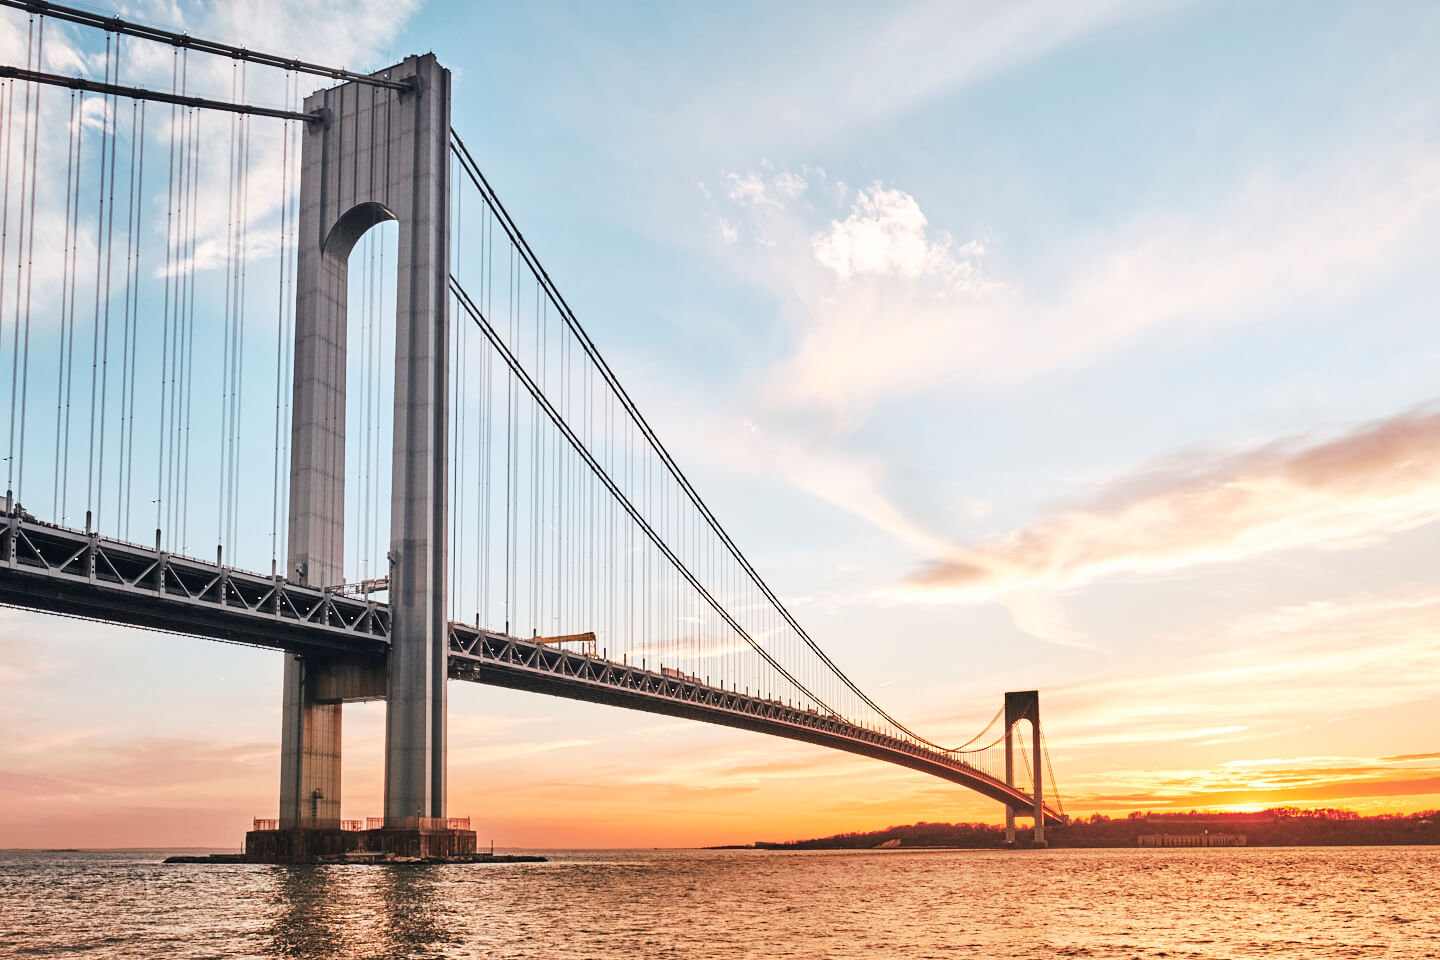 New York Verrazano Bridge Travel Photographer Marcus Lewis full-tinypng